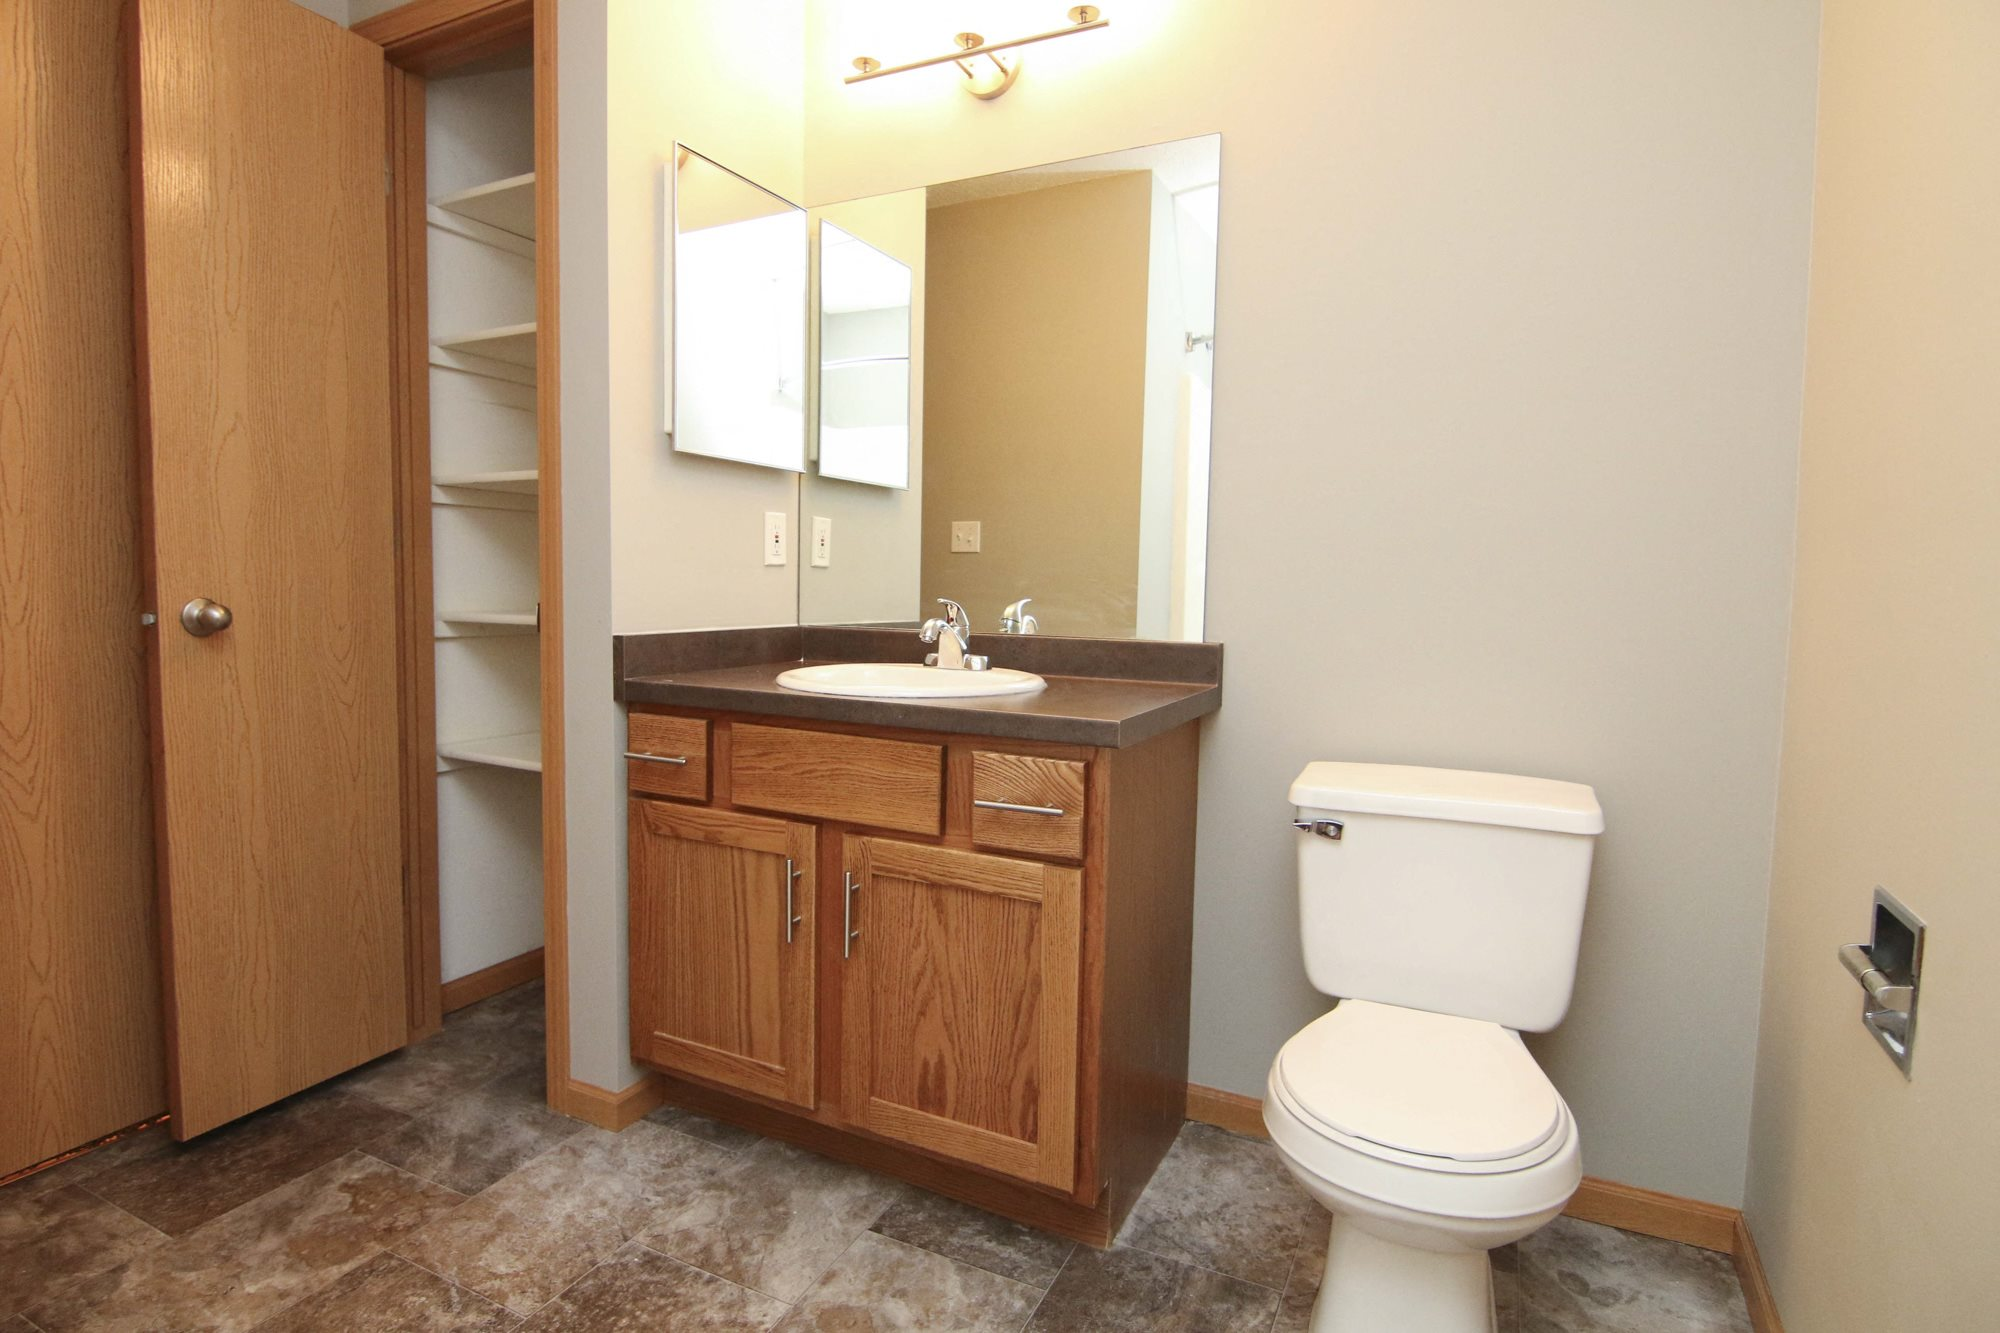 Renovated bathroom with linen storage closet at Northbrook Apartments